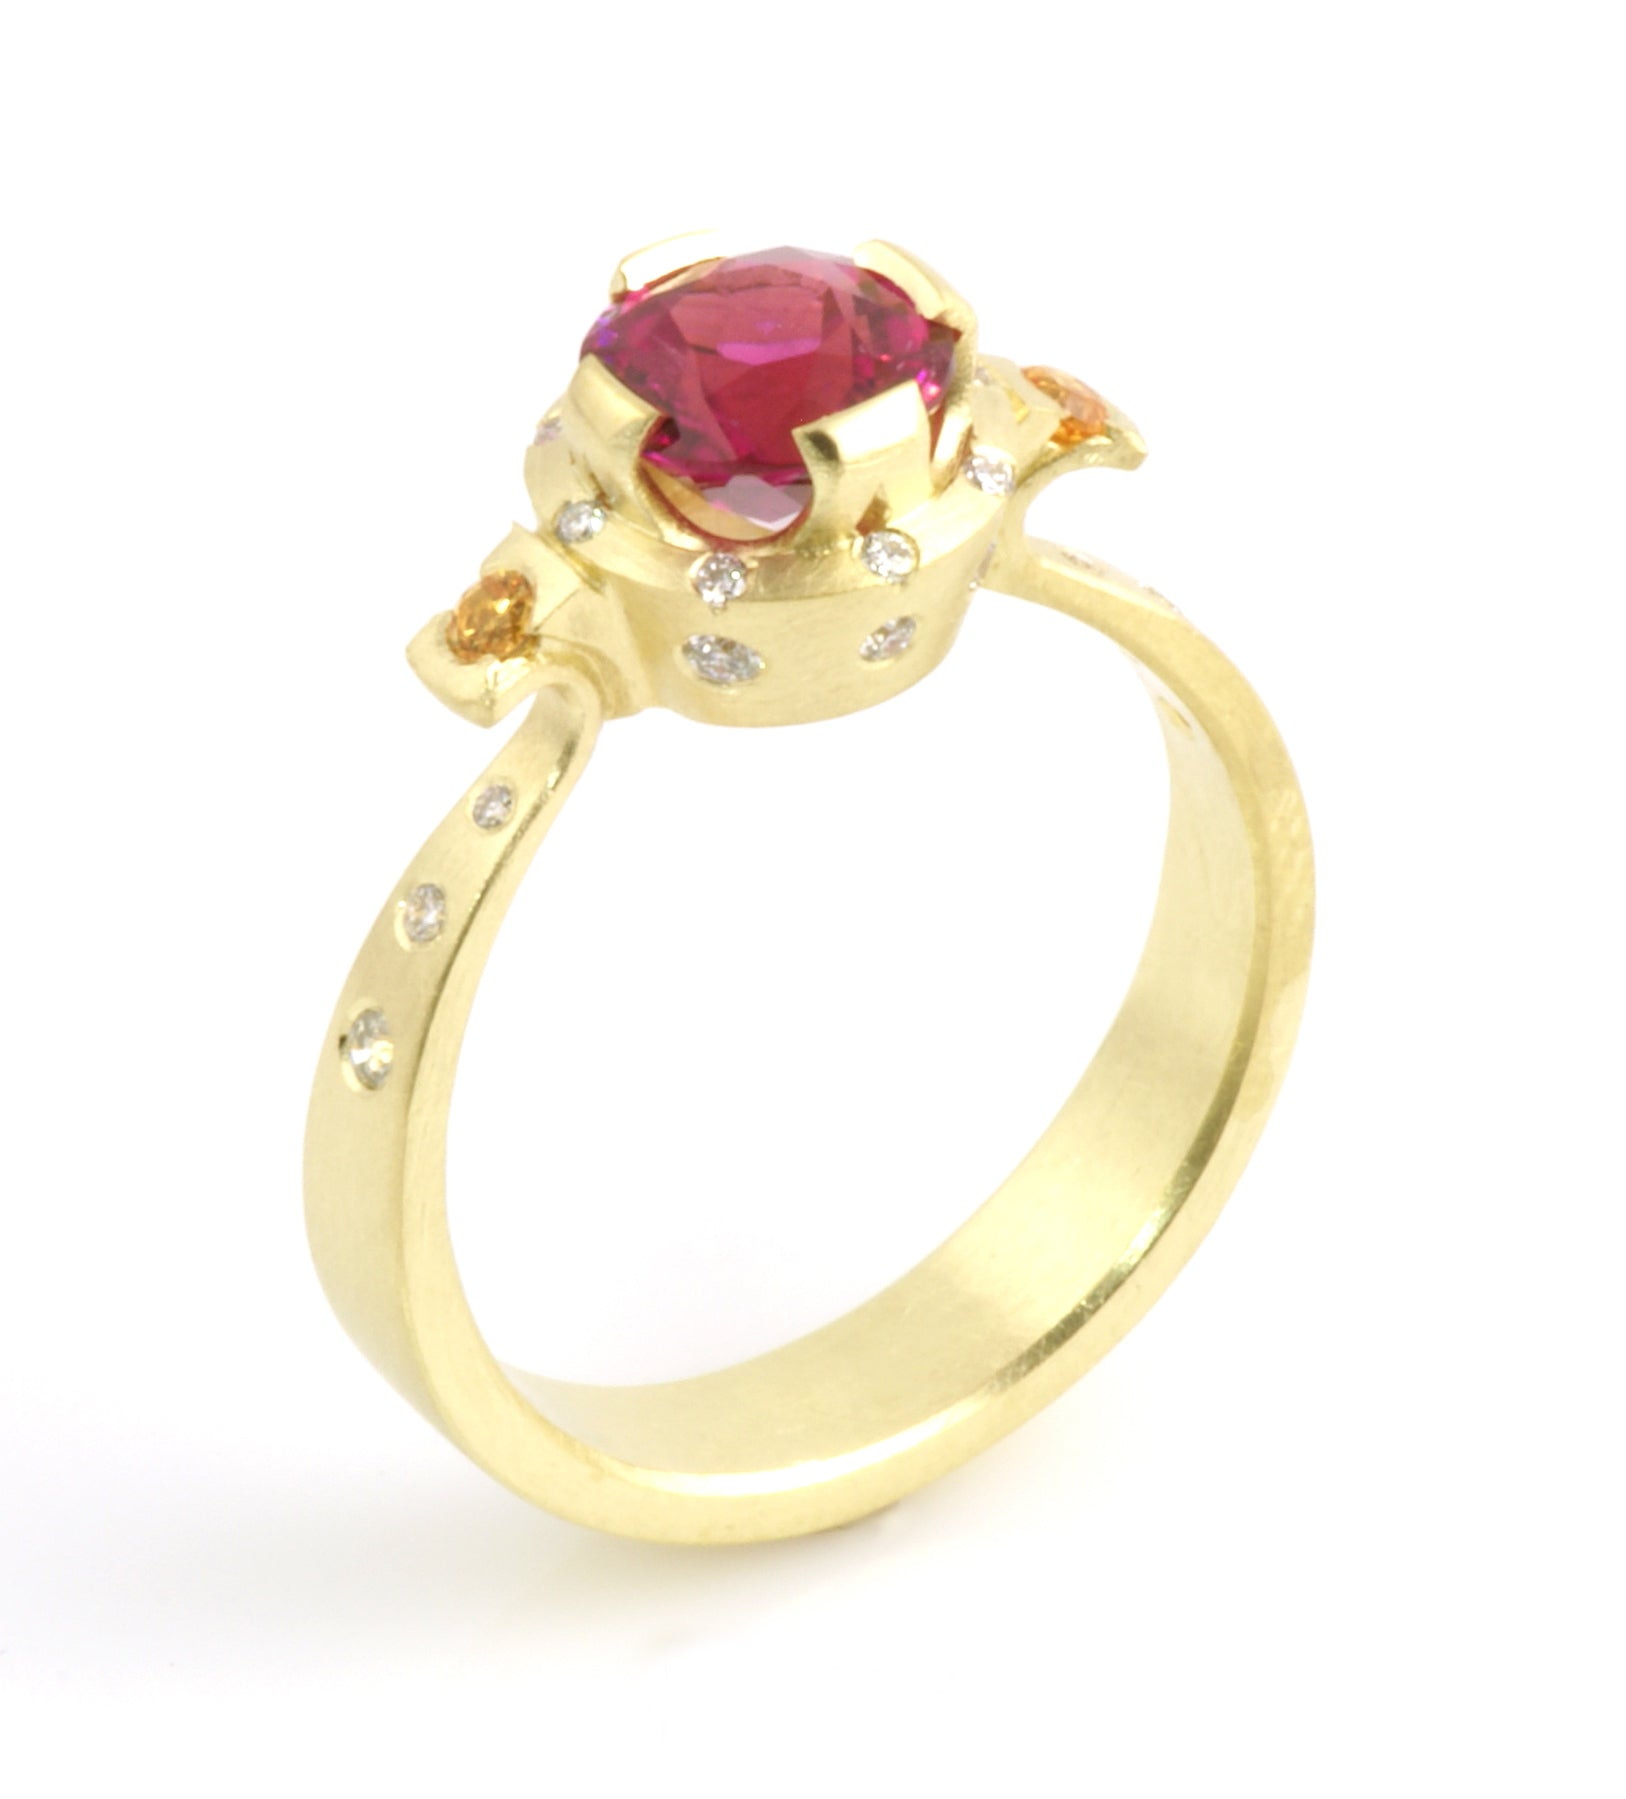 Rubellte Tourmaline ring